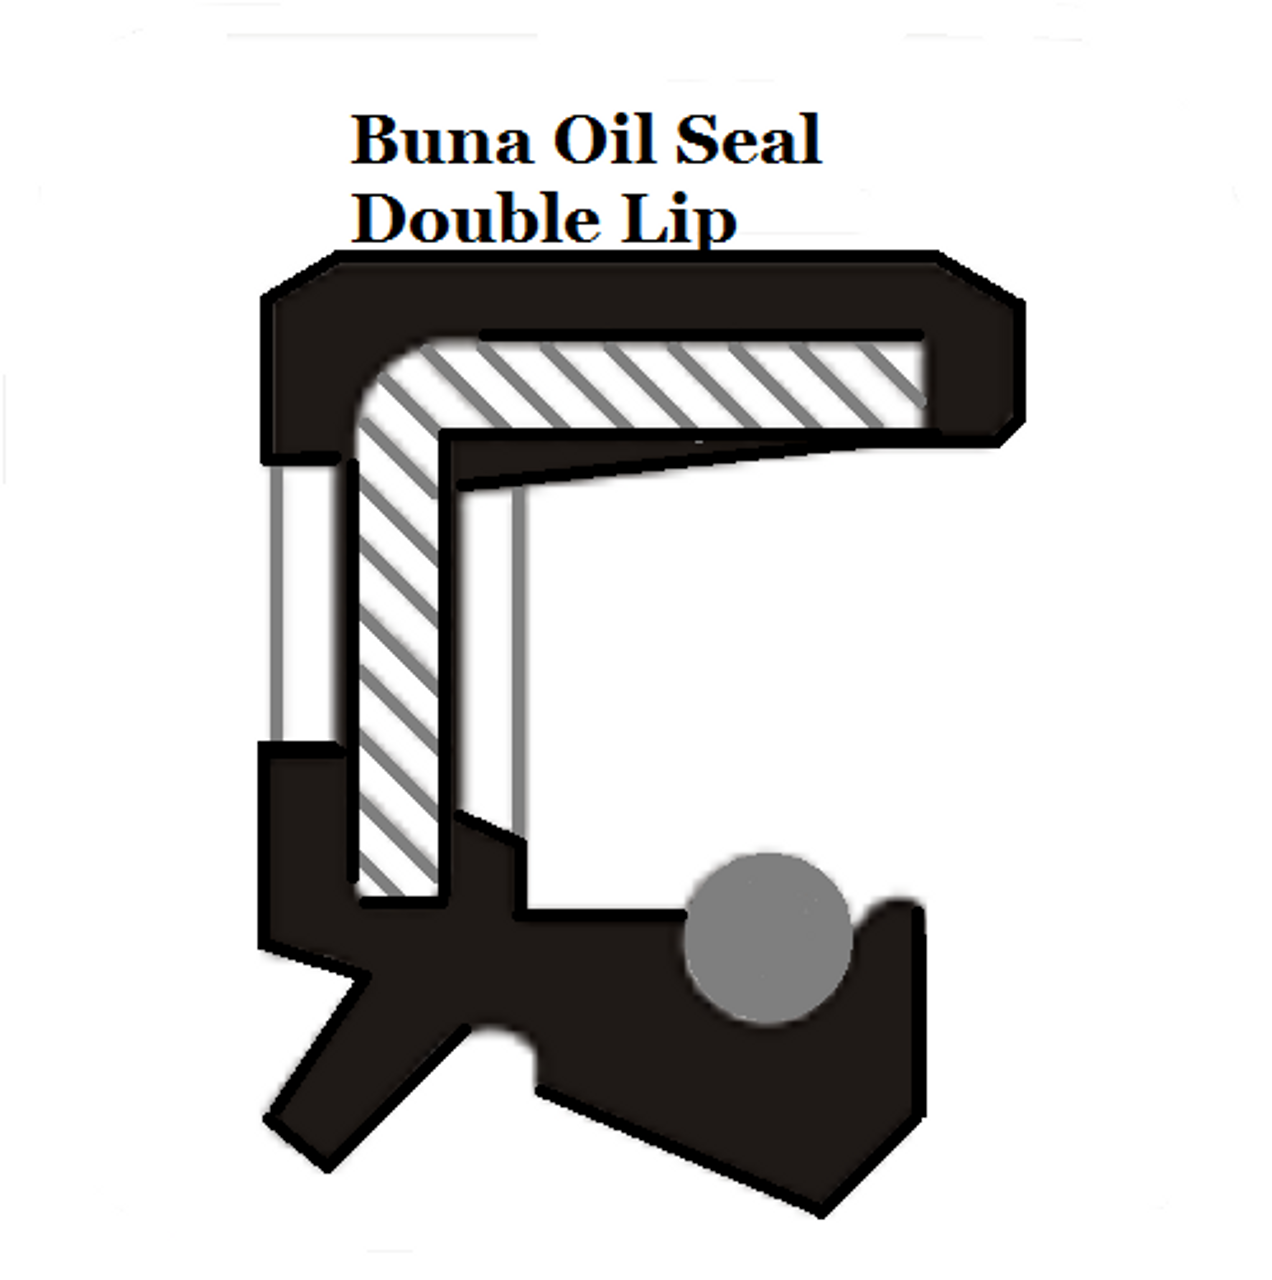 Metric Oil Shaft Seal 105 x 130 x 13mm Double Lip   Price for 1 pc